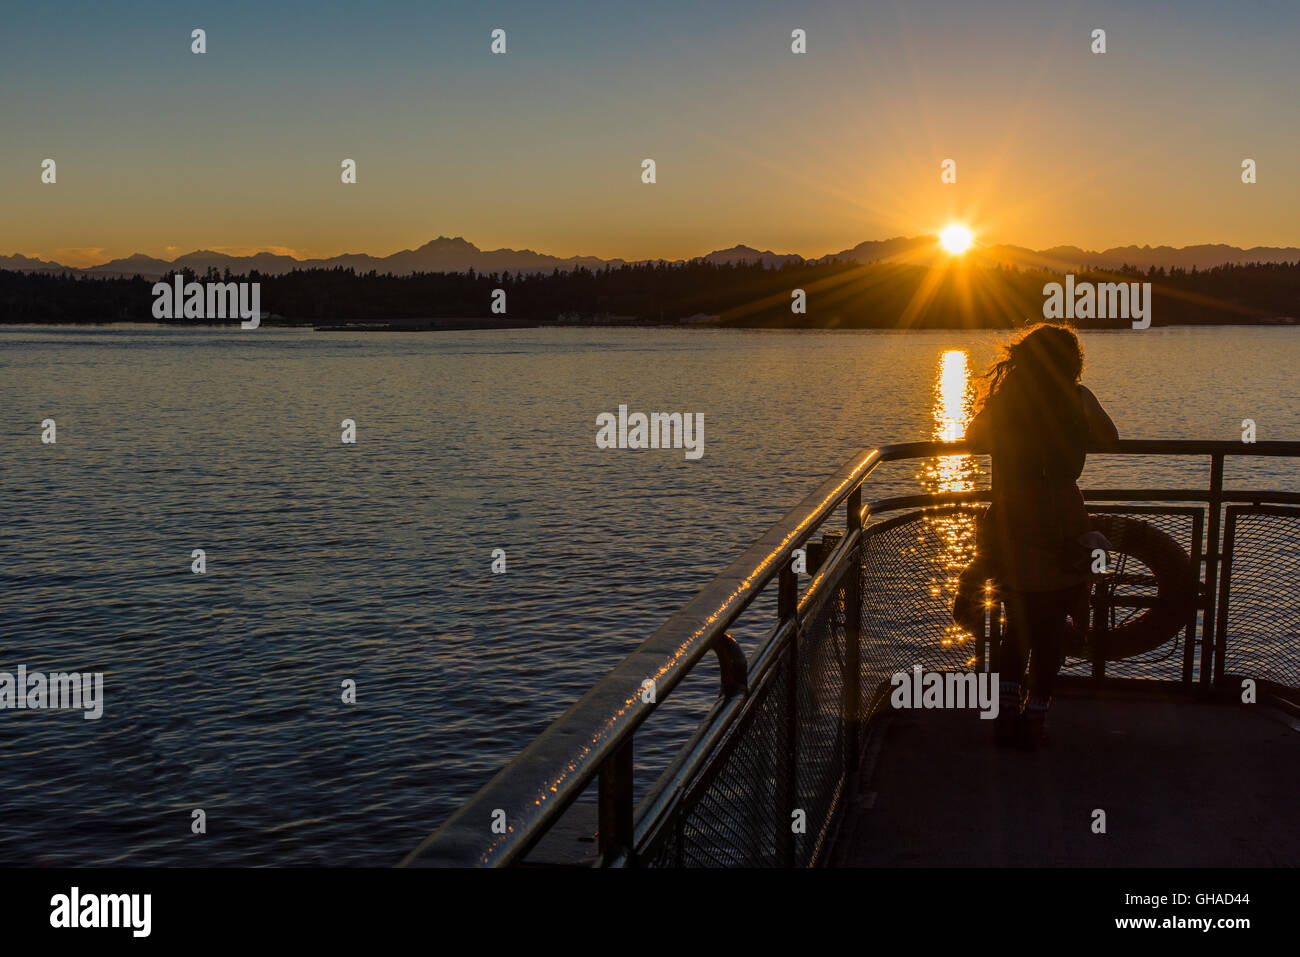 Young girl watching the sunset on the Elliott Bay from the ferry, Seattle, Washington, USA Stock Photo